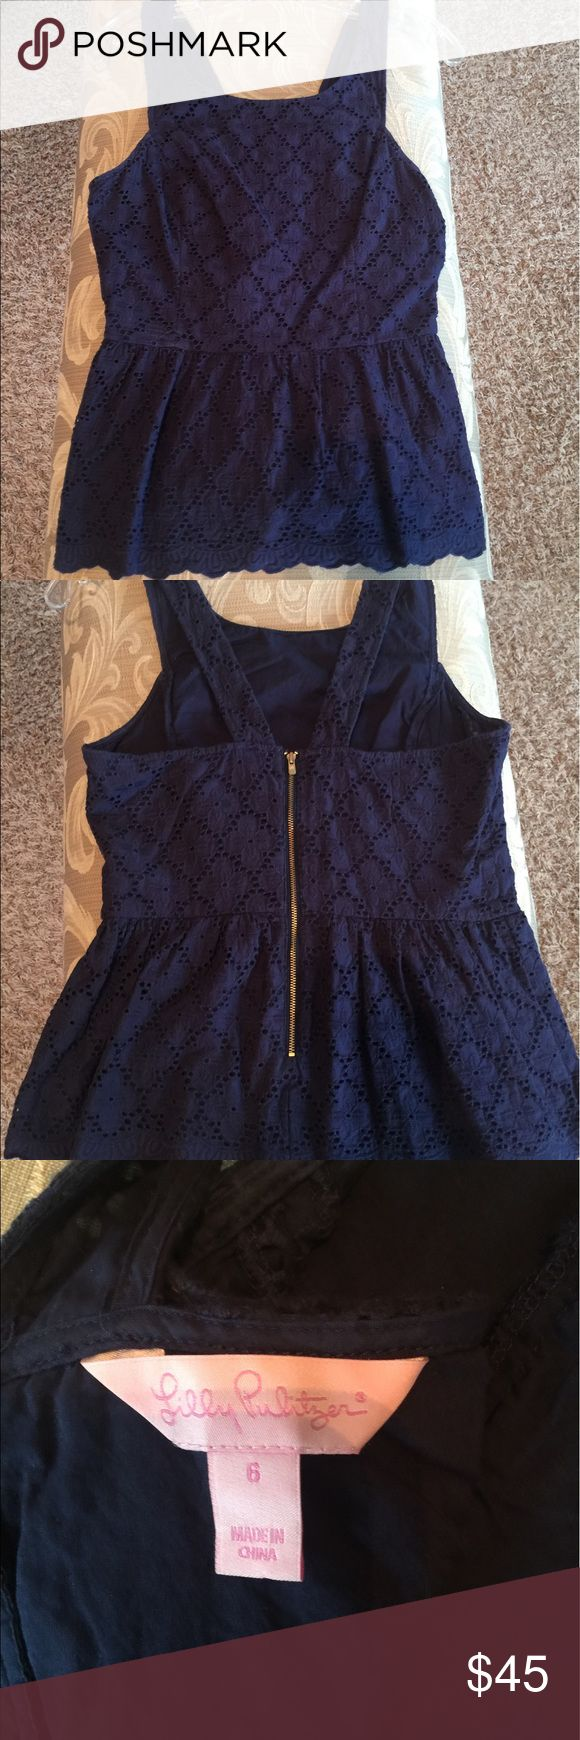 Lilly Pulitzer Navy blue lace peplum top Lilly Pulitzer navy lace peplum top size 6 non smoking home Lilly Pulitzer Tops Tank Tops